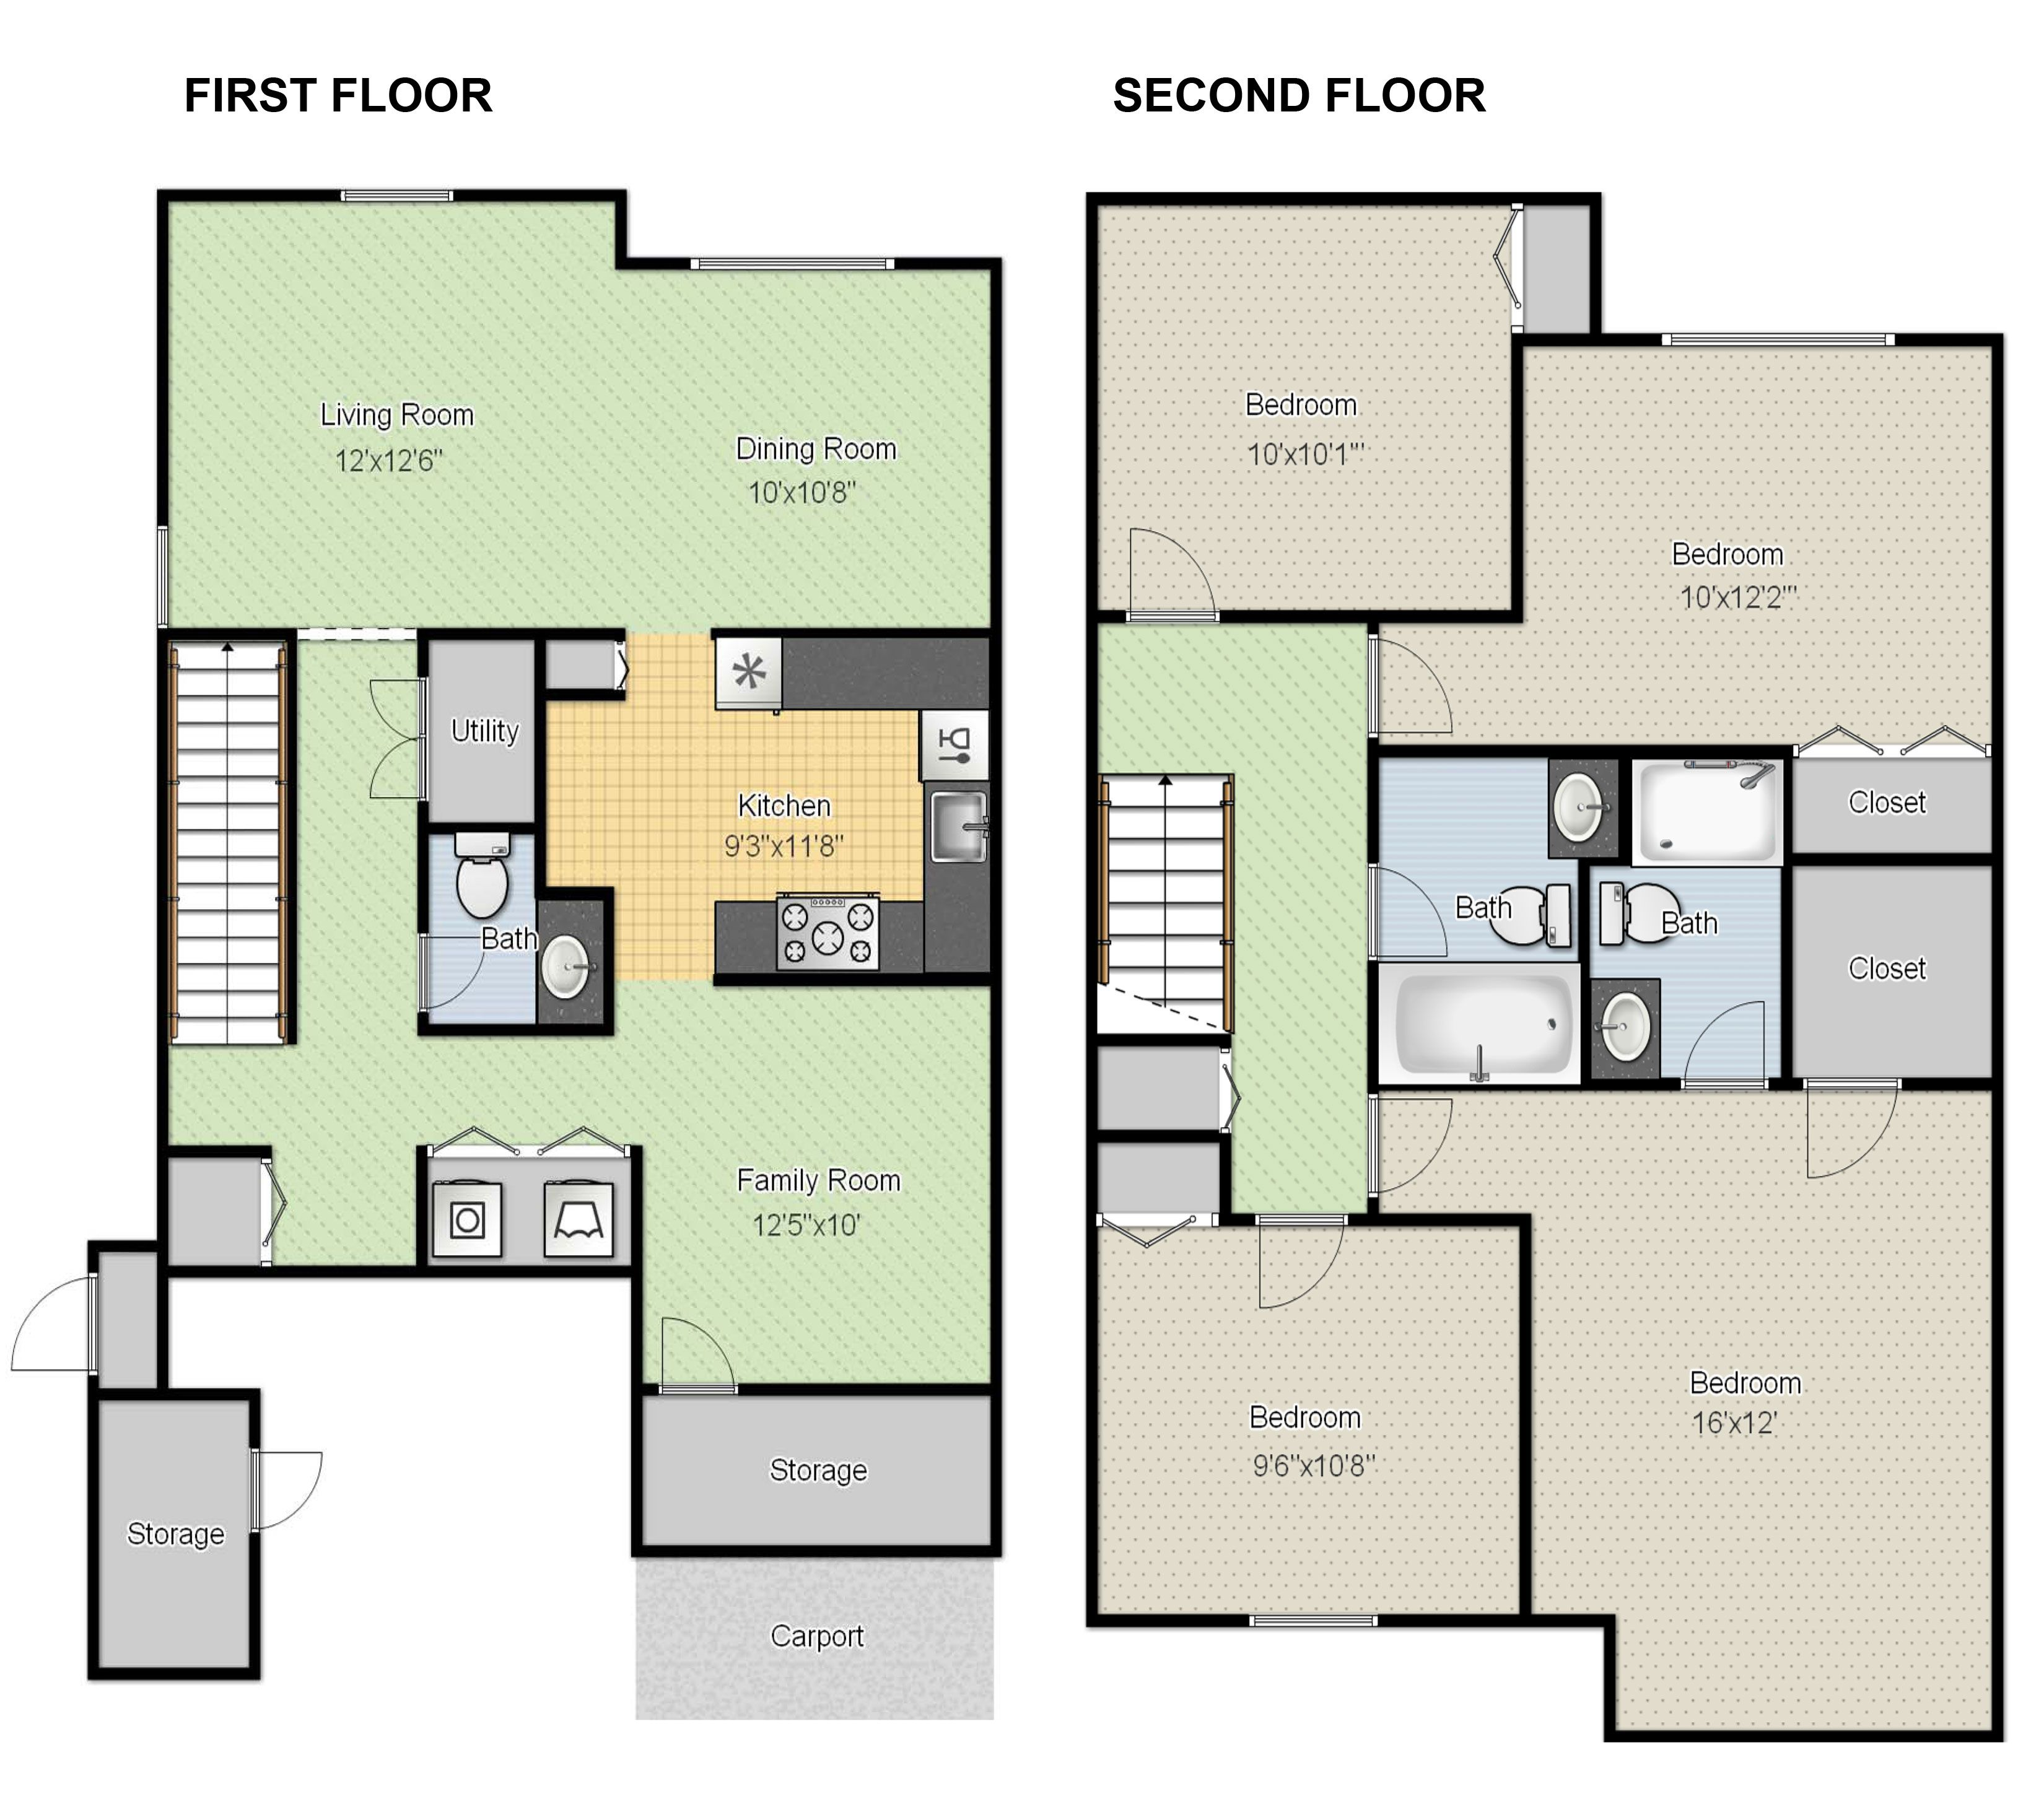 Bungalow Haus Online Planen Create Floor Plans Online For Free With Large House Floor